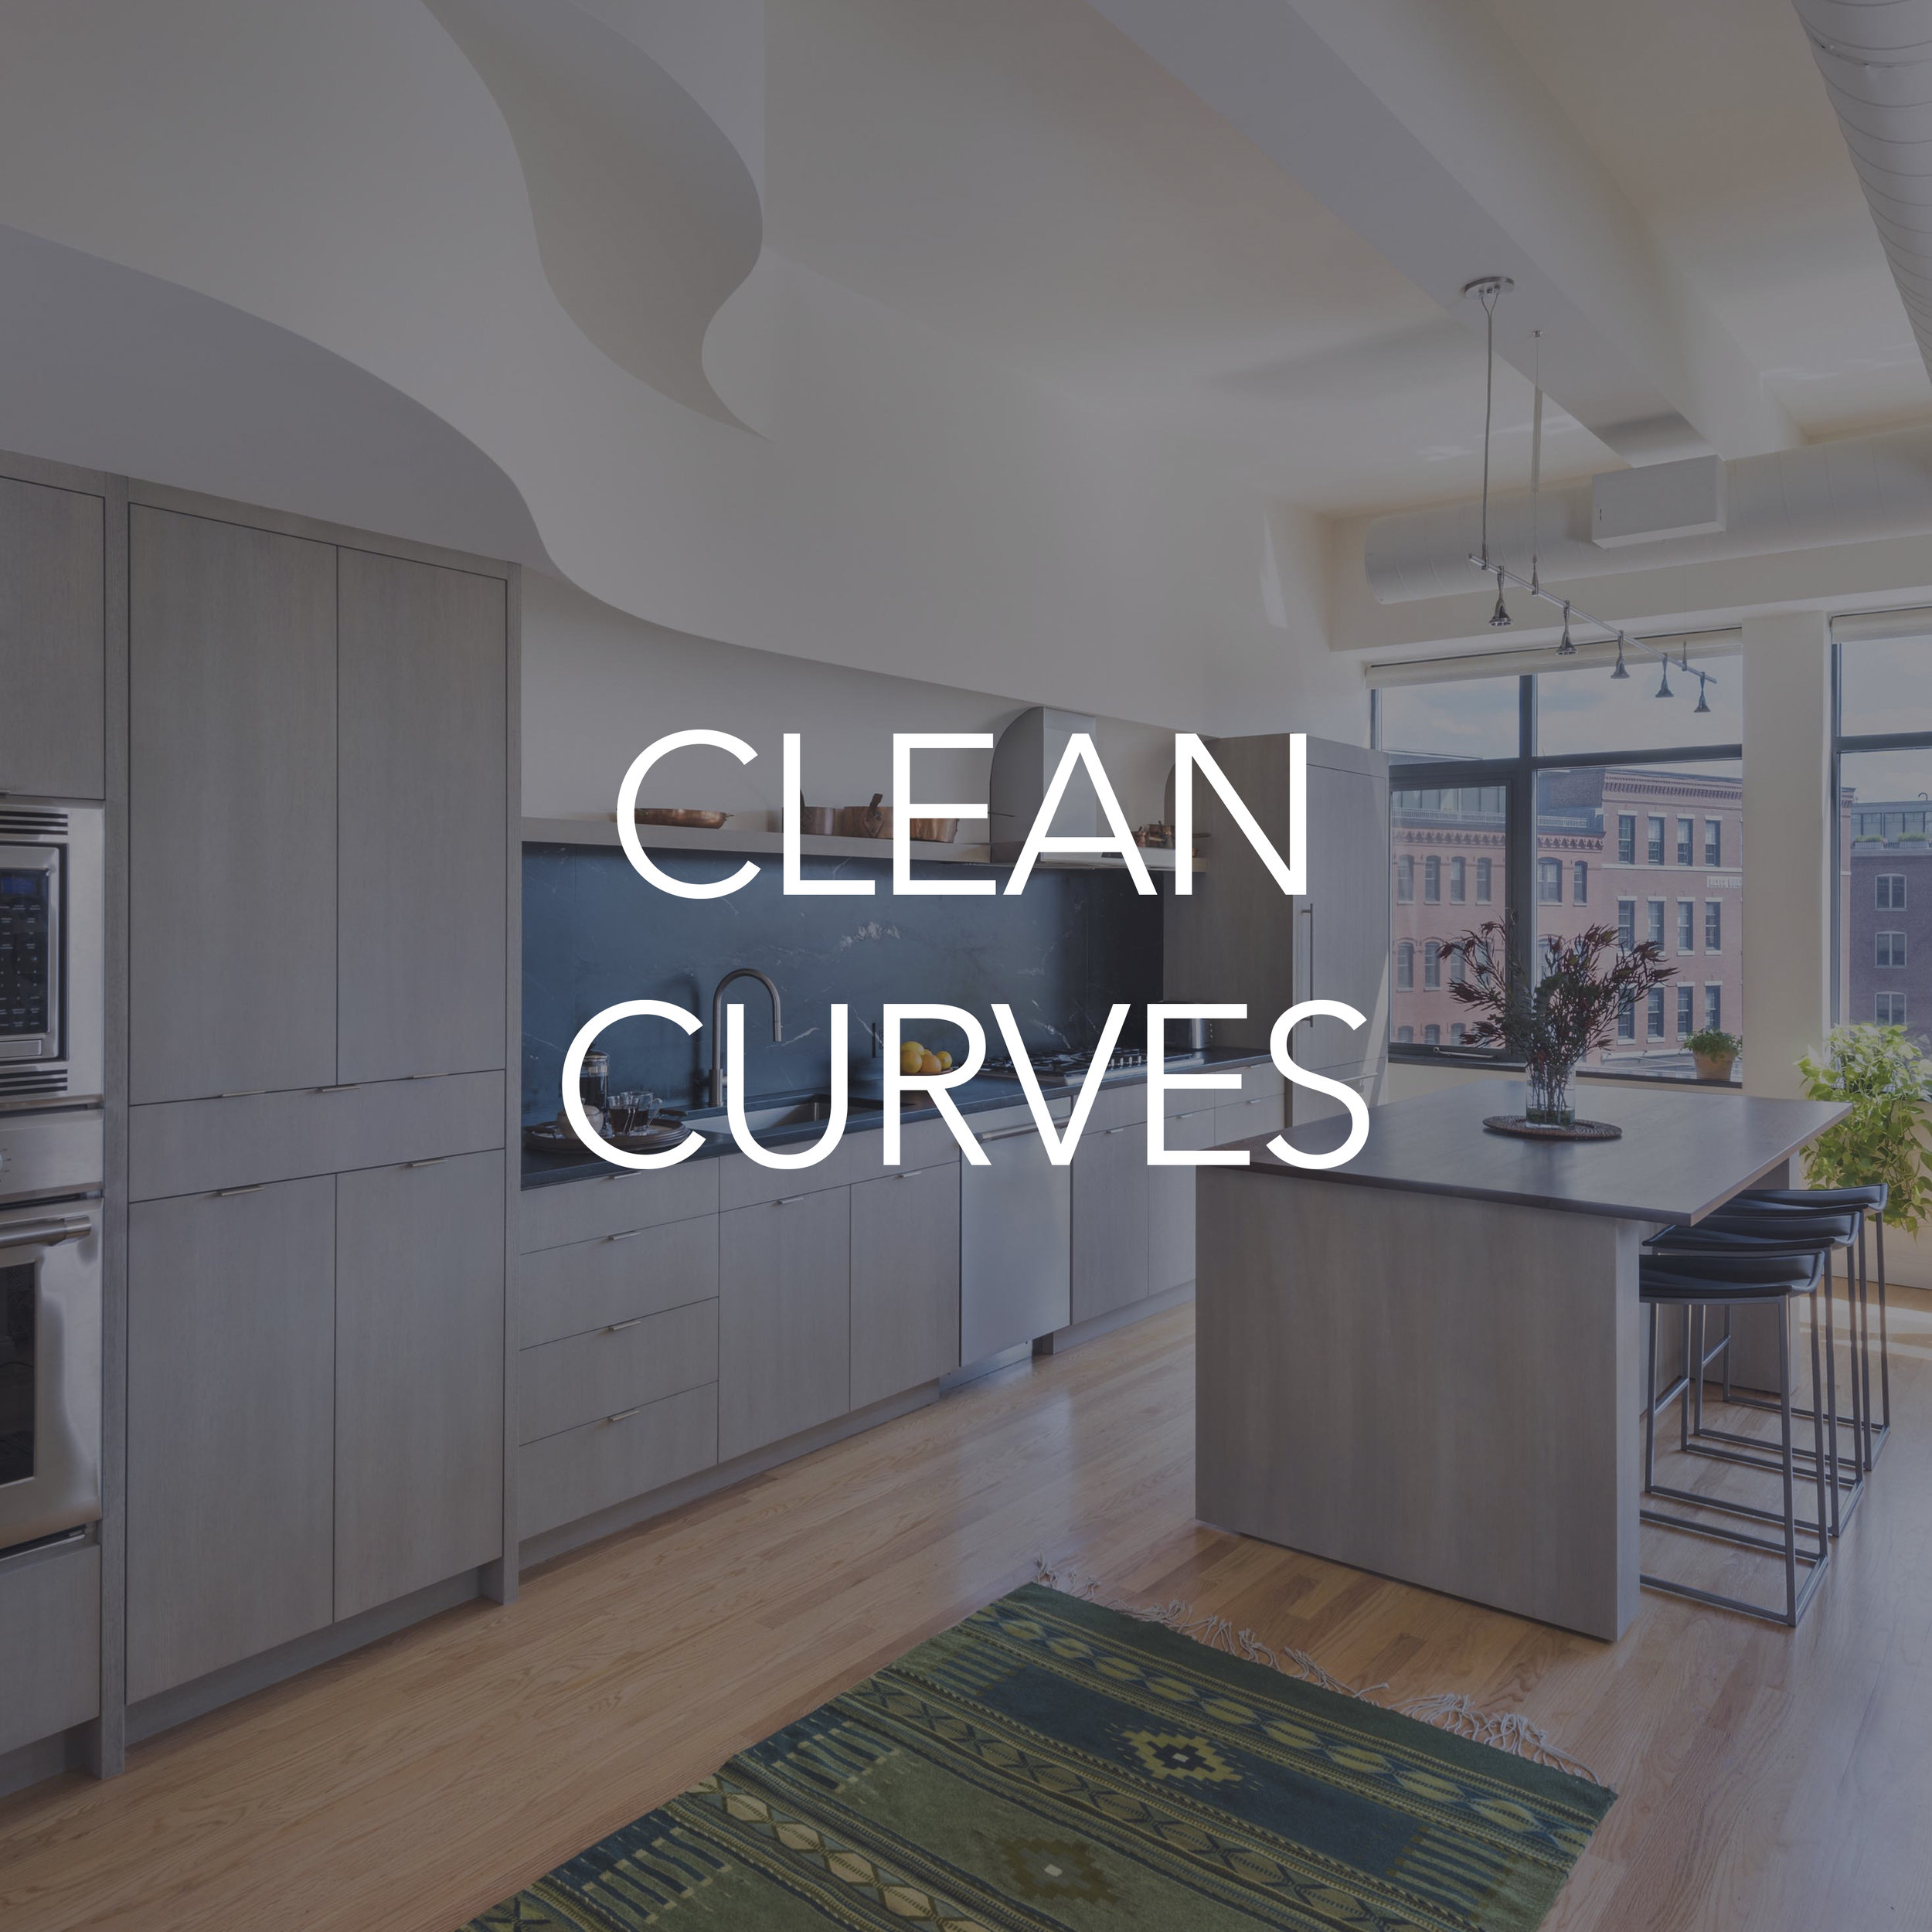 Copy of Clean Curves